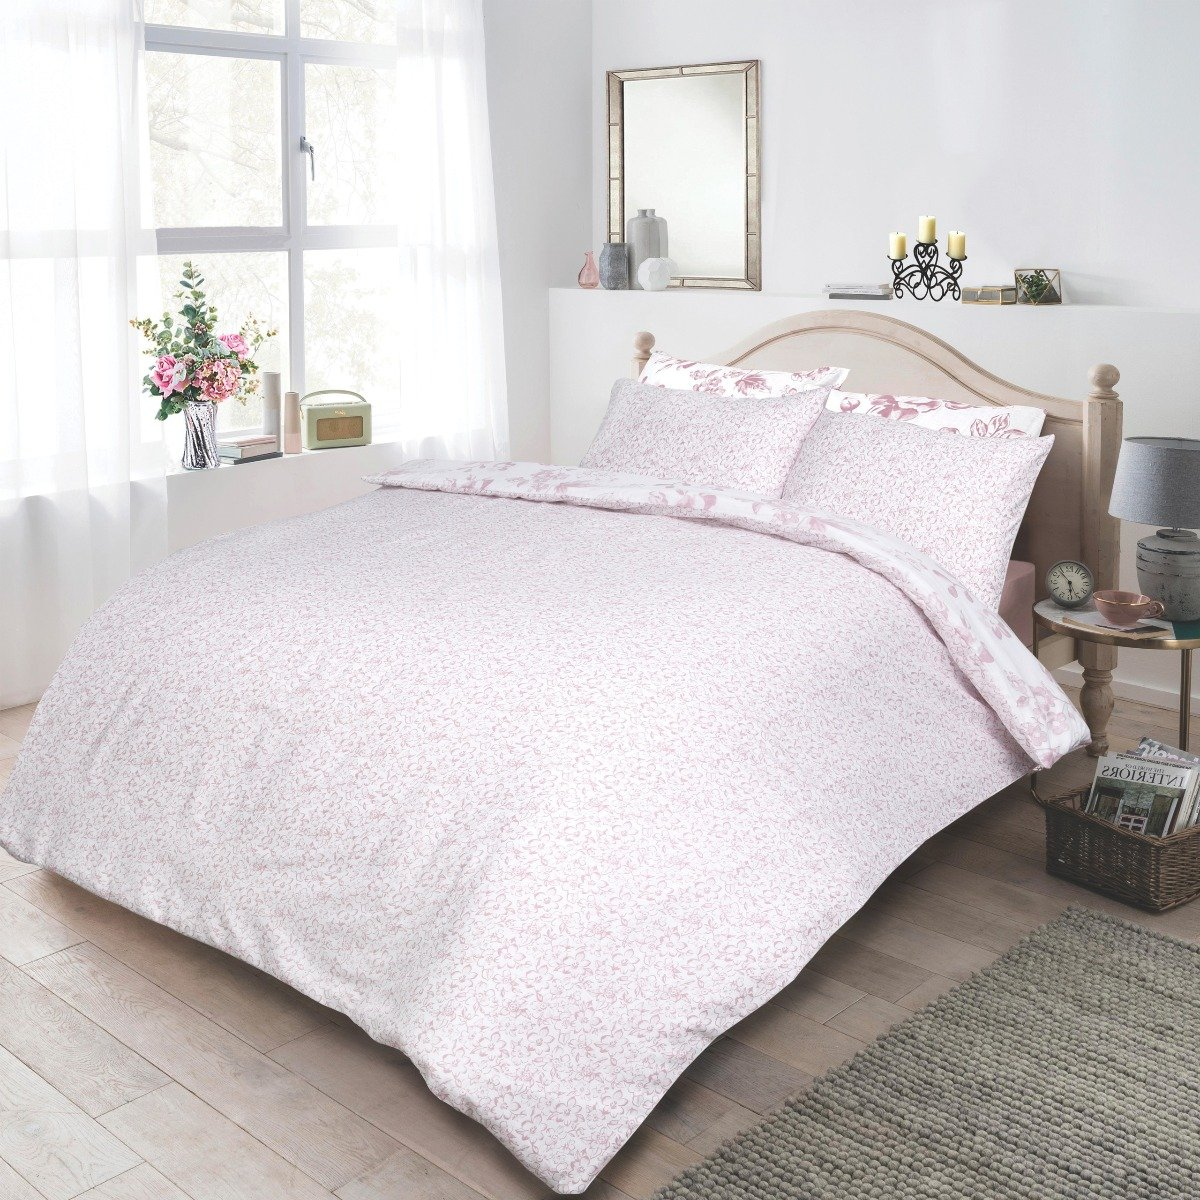 Monochrome Floral Blush Bedding - Reversible Duvet Cover and Pillowcase Set